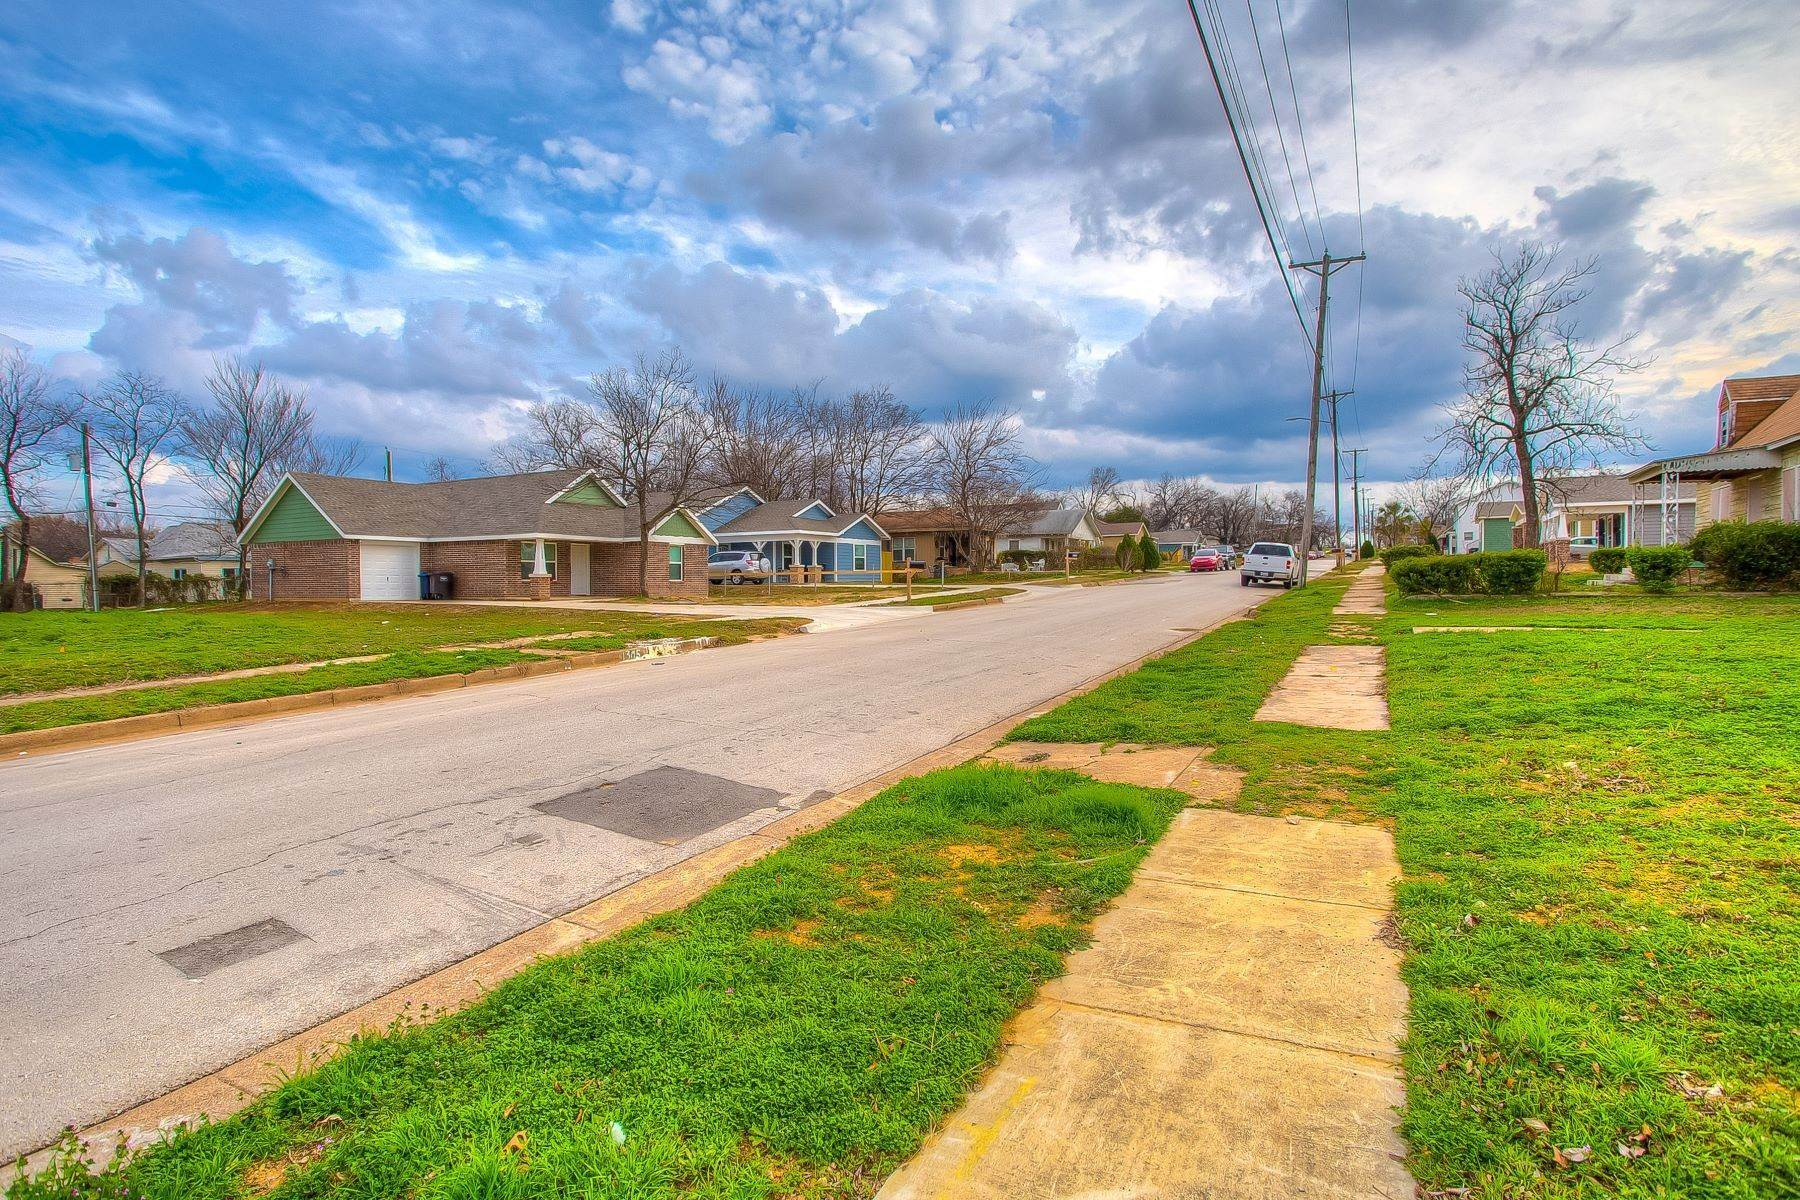 17. Land for Sale at Build your dream home on this over-sized lot 1300 New York Avenue Fort Worth, Texas 76104 United States